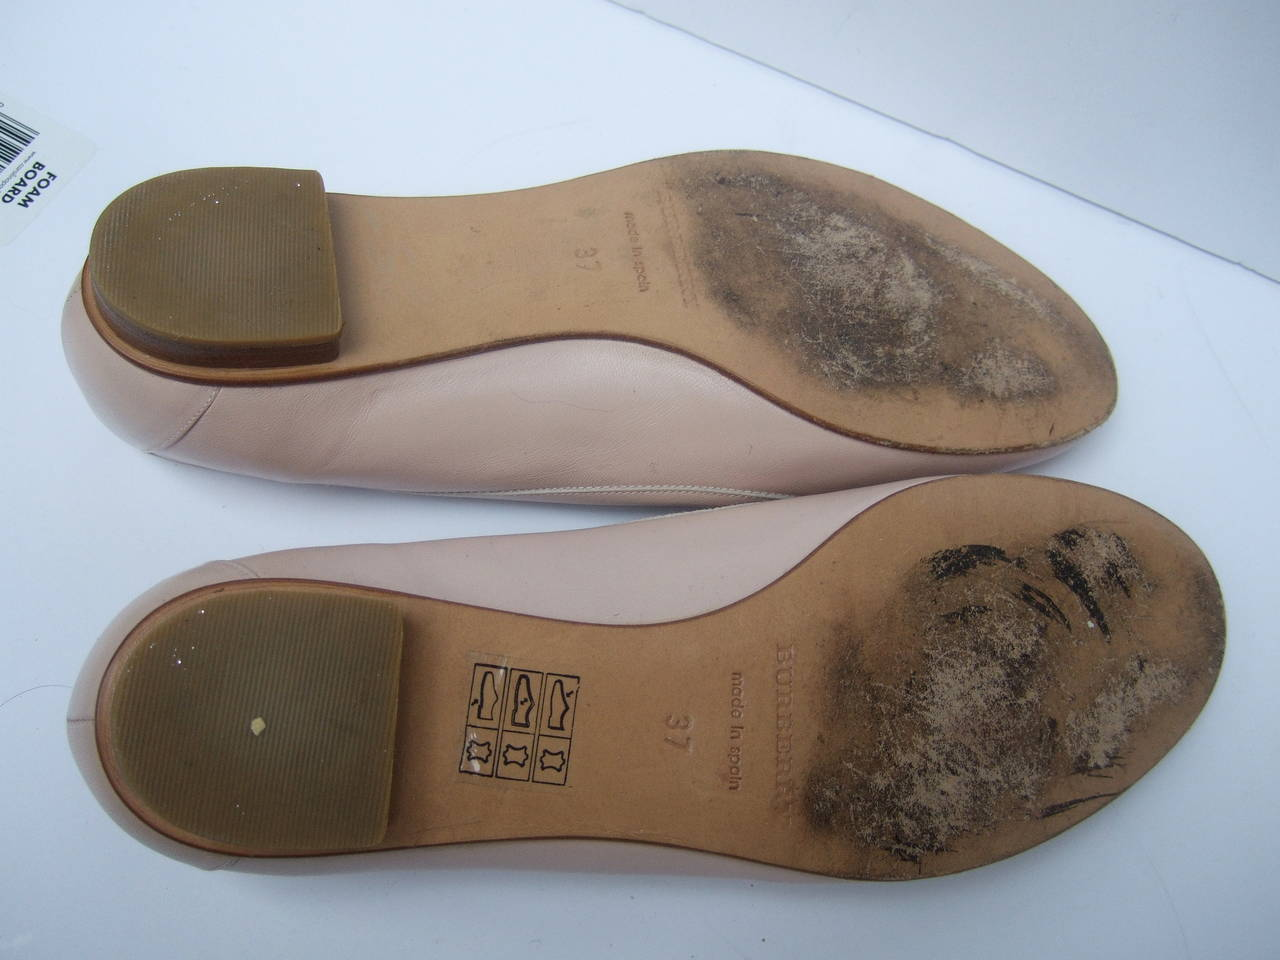 Burberry Blush Pink Leather Ballet Style Flats Size 37 For Sale 2